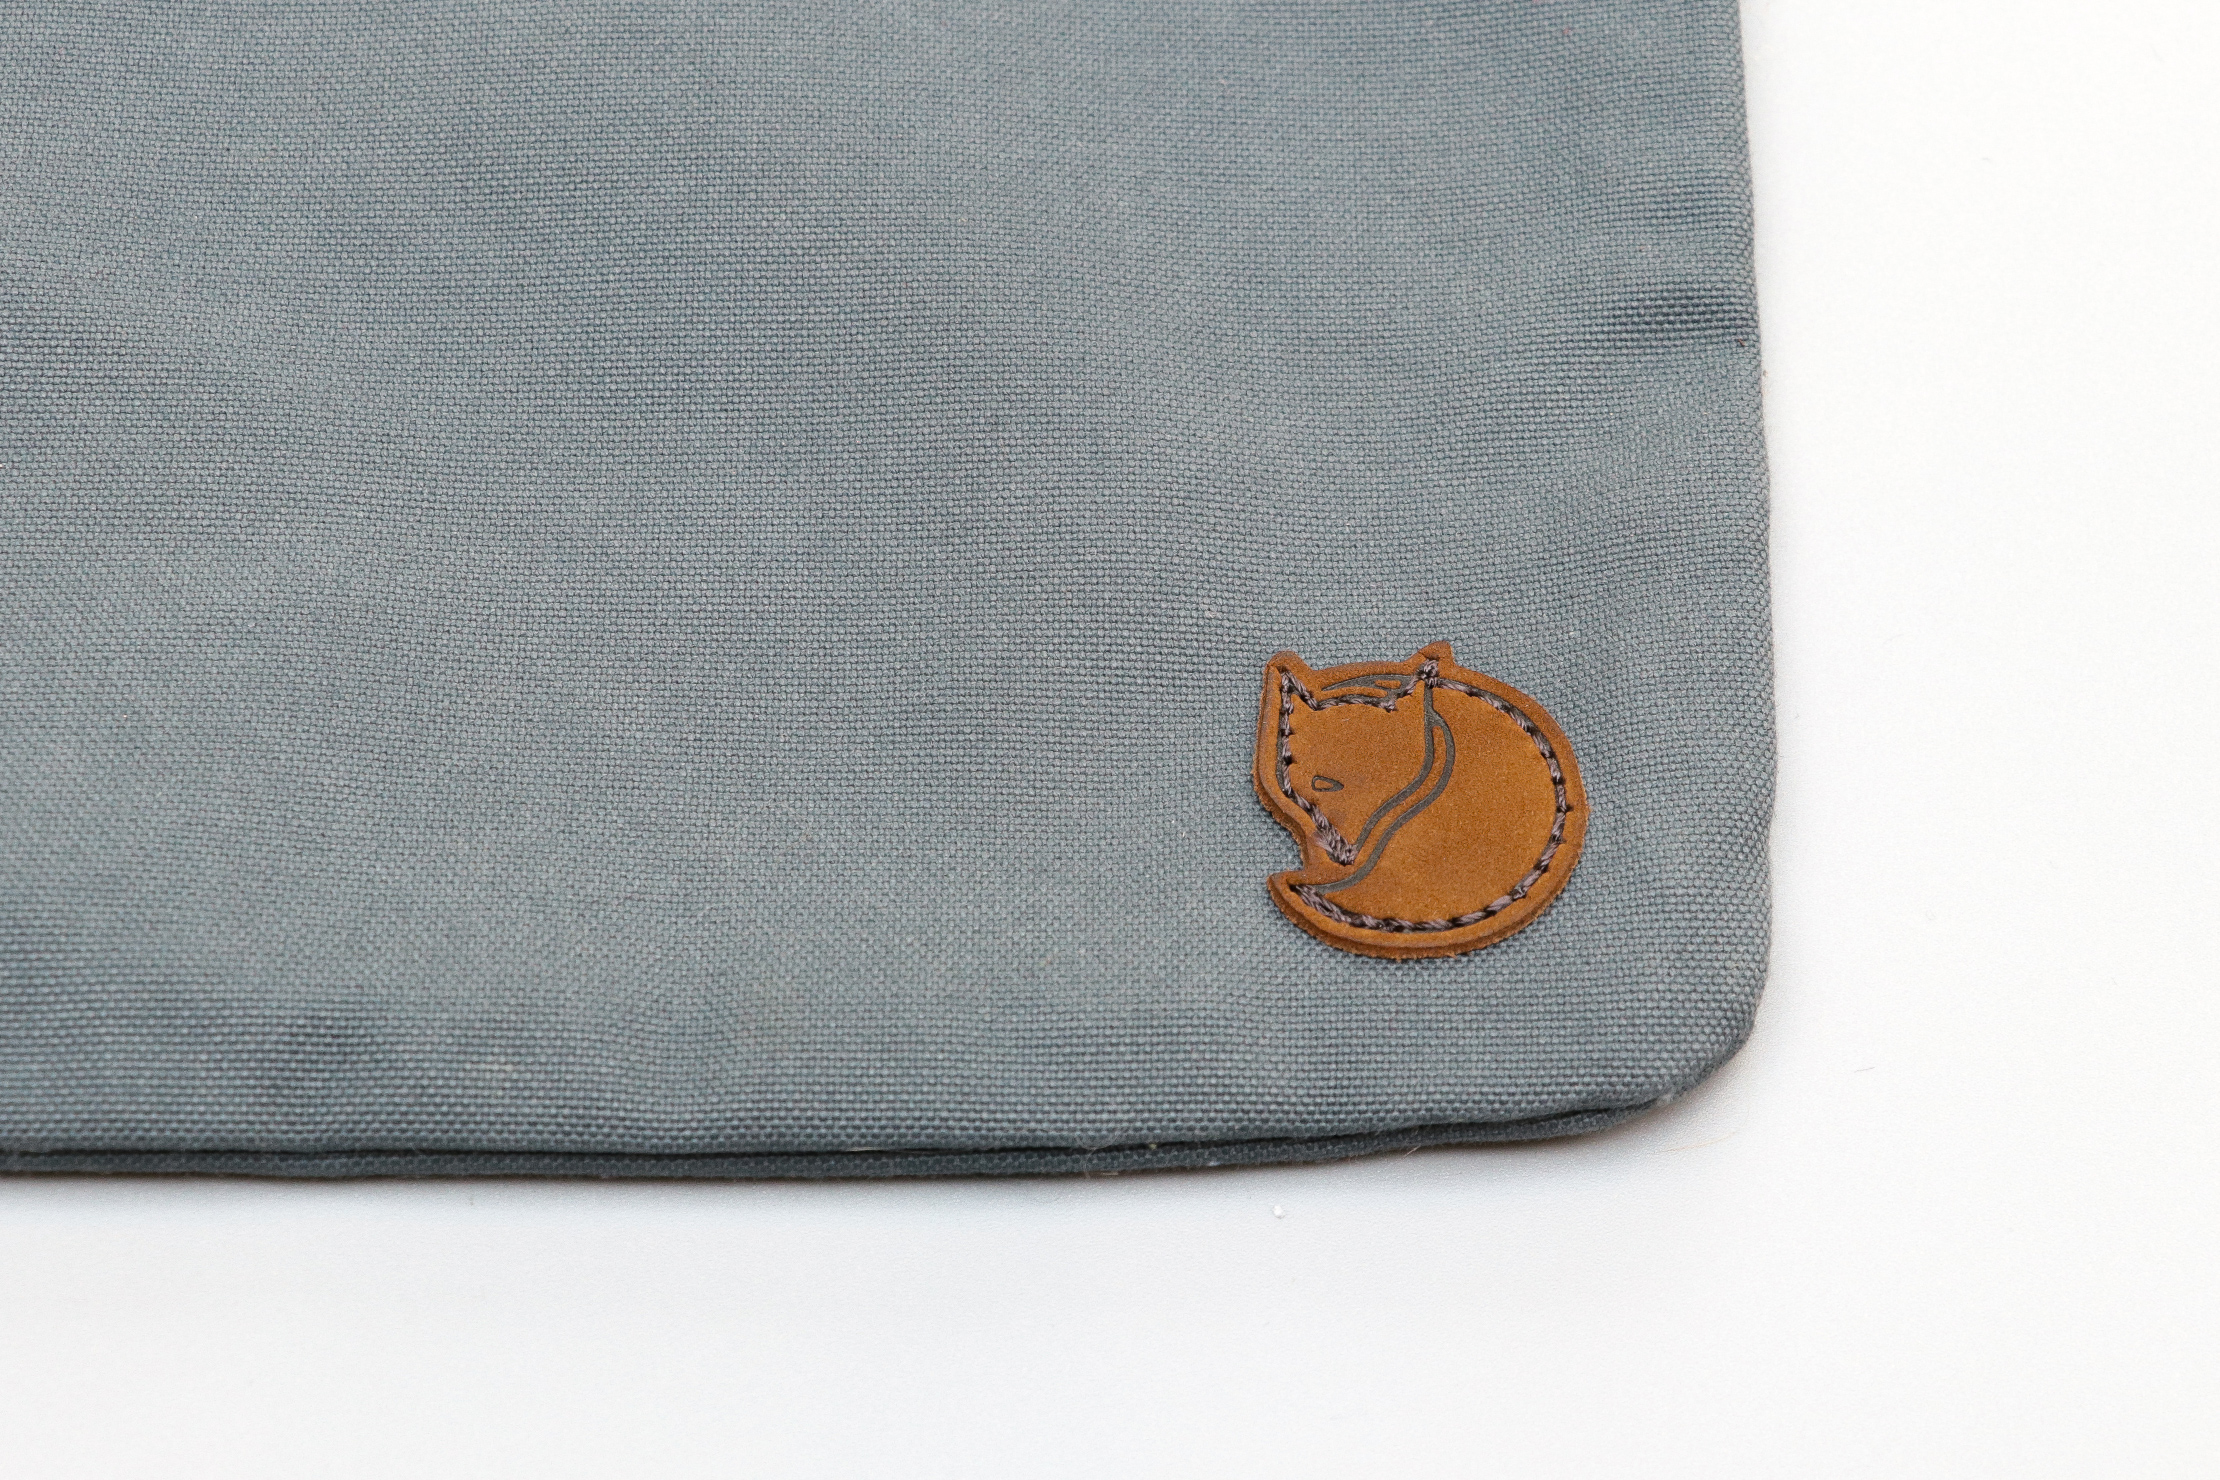 Arctic Fox Logo On The Fjallraven Gear Pocket